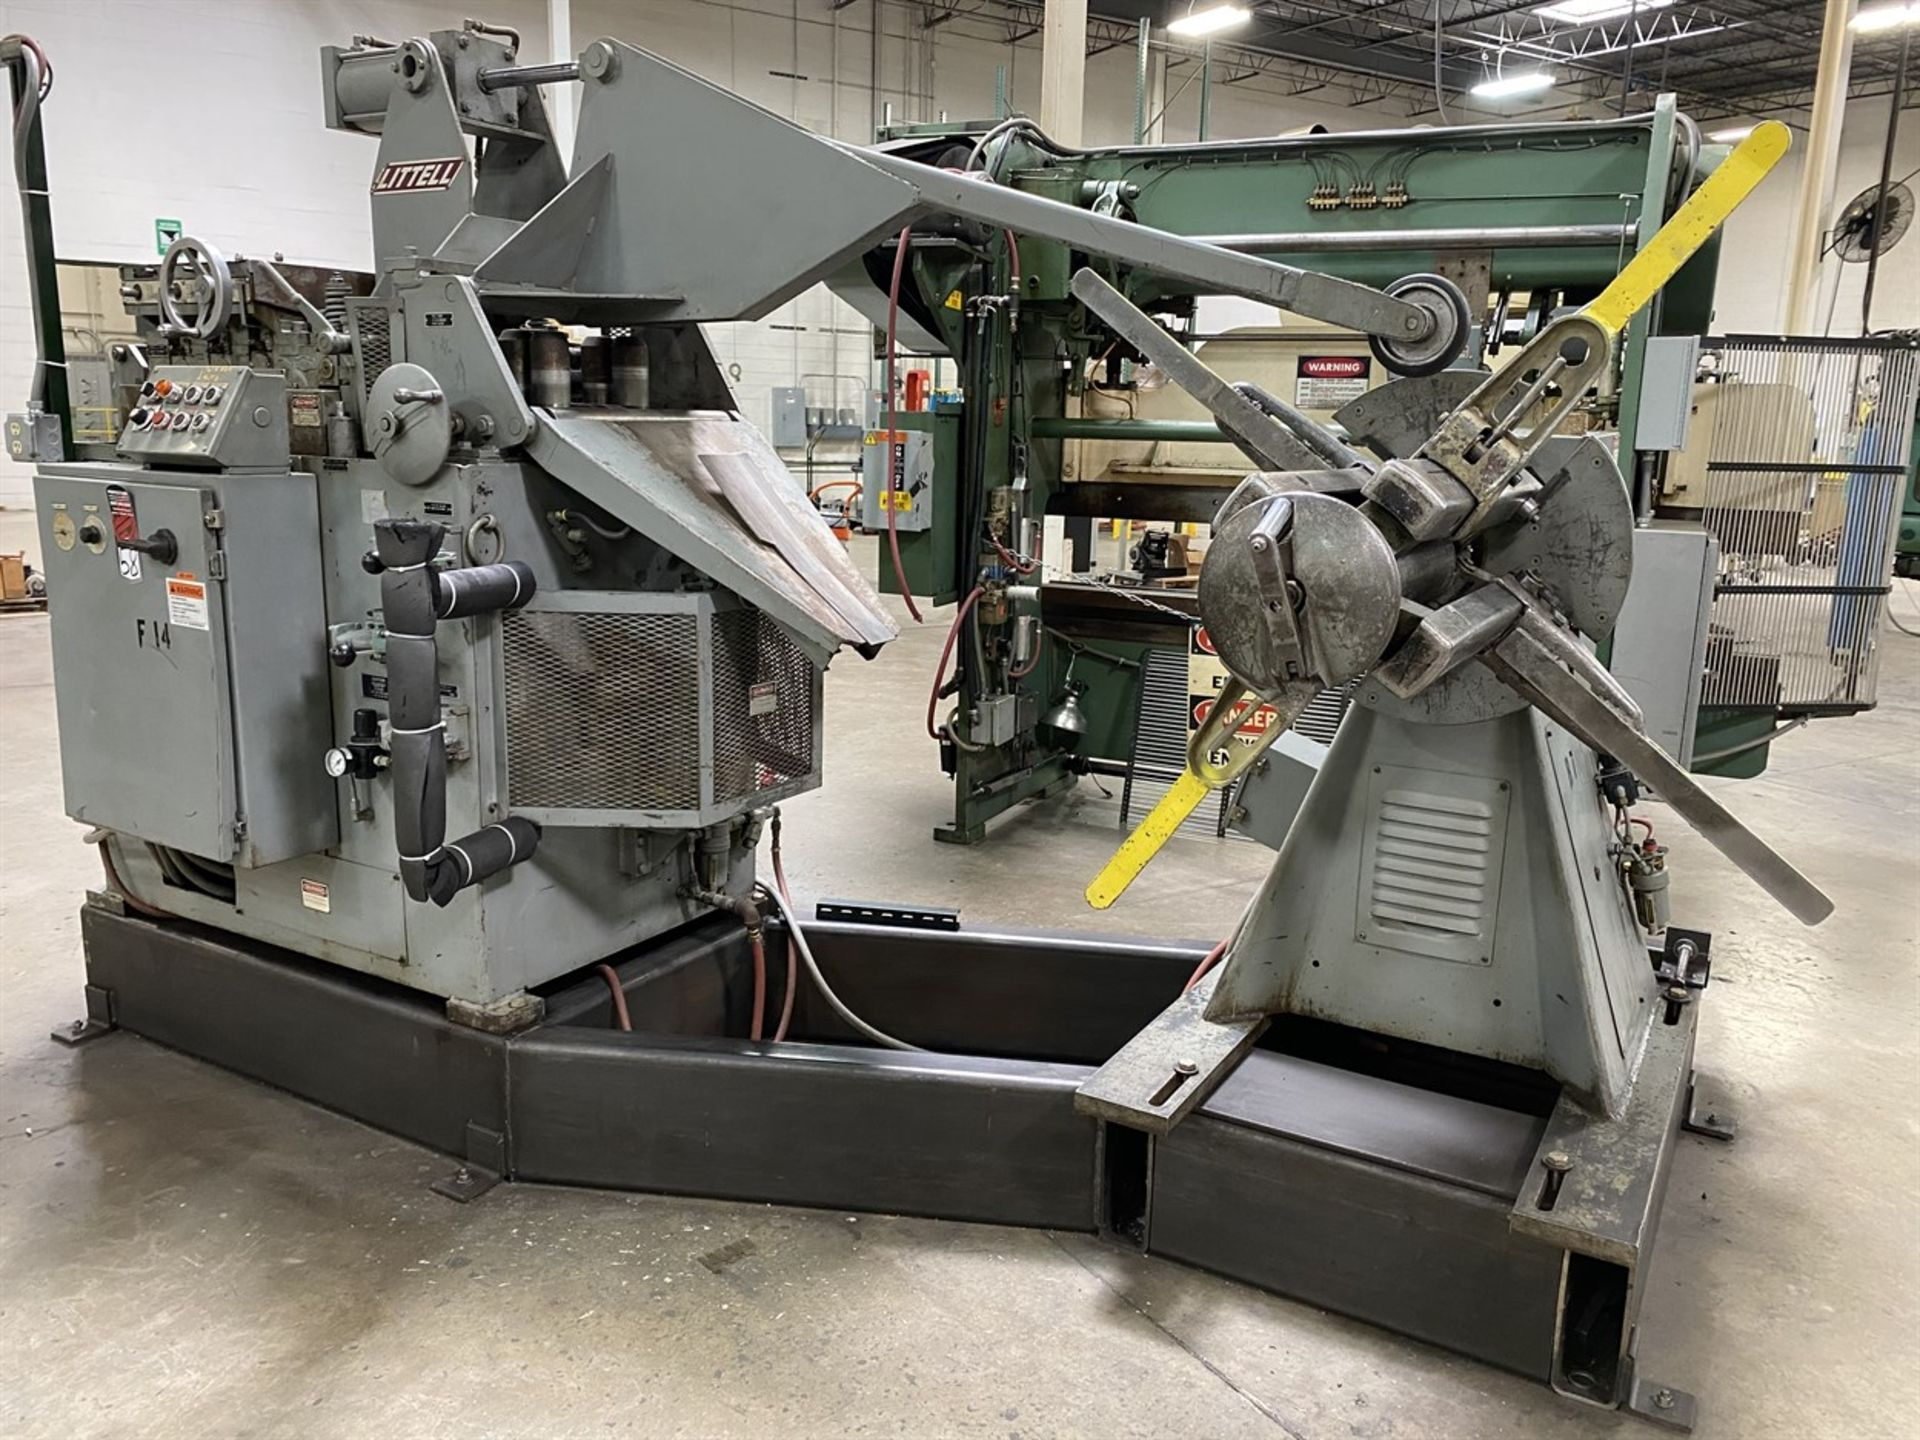 """Lot 58 - Coil Line Comprising LITTELL 40-24 Auto Centering Reel, s/n 89688-89, 4000 Lb. Capacity, 15-20"""""""